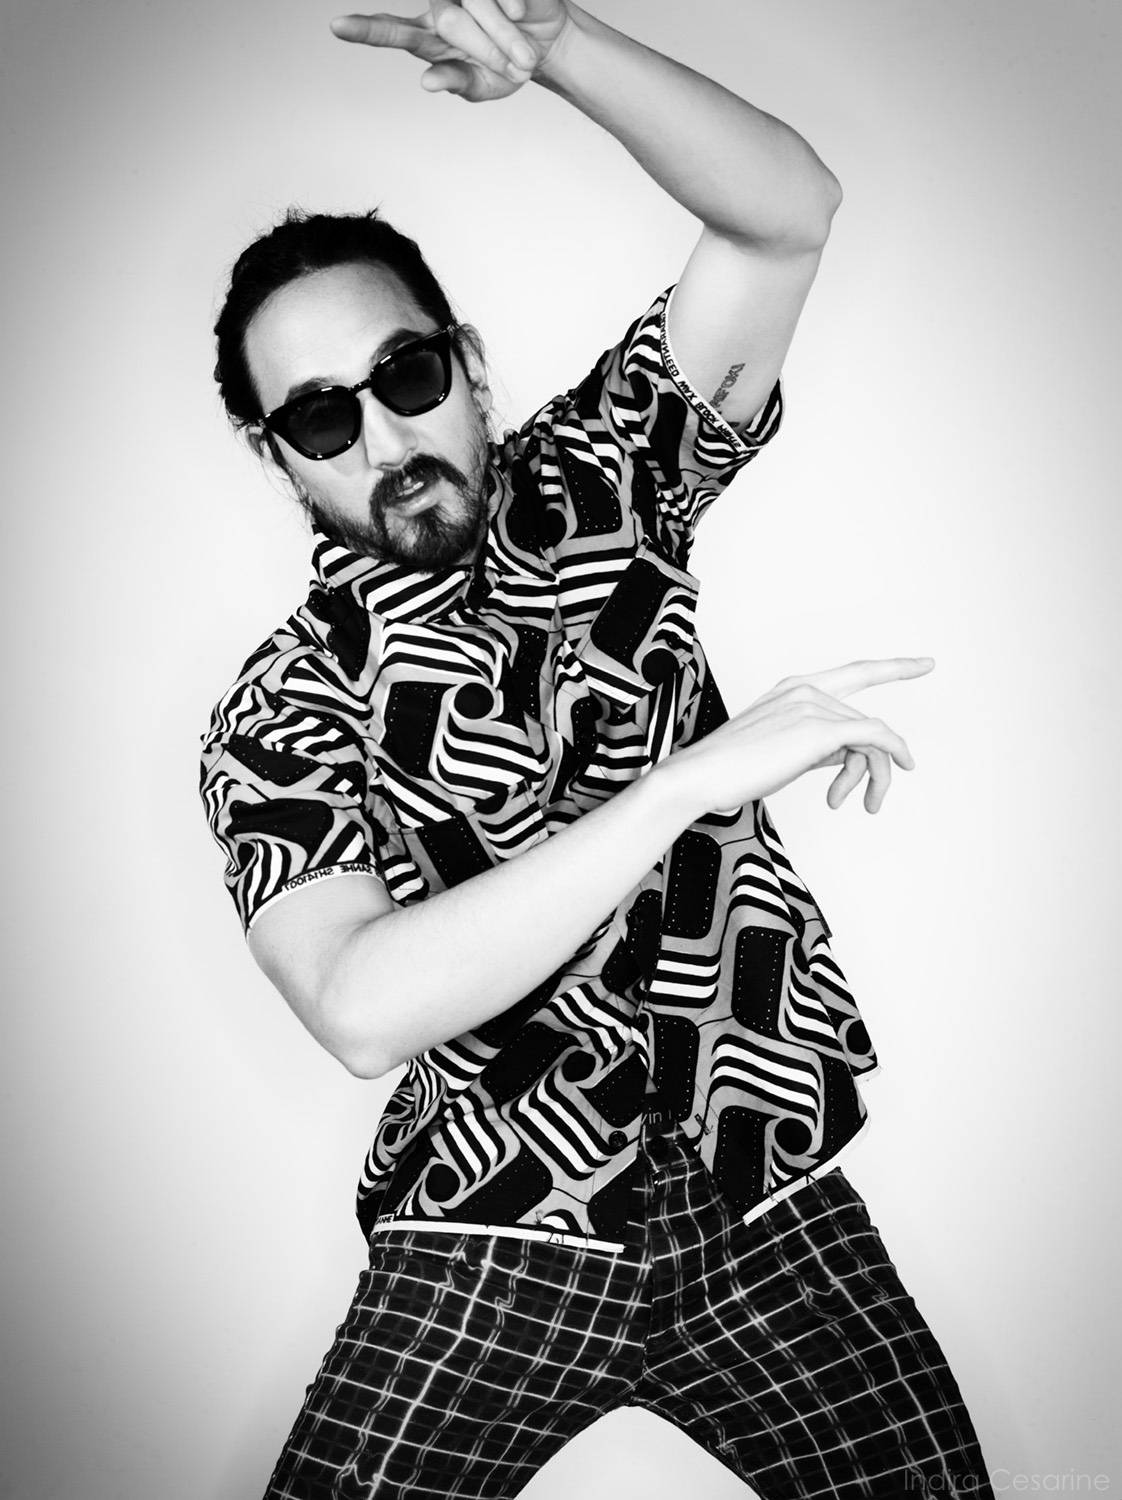 Steve-Aoki-The-Untitled-Magazine-Photography-by-Indira-Cesarine-011.jpg